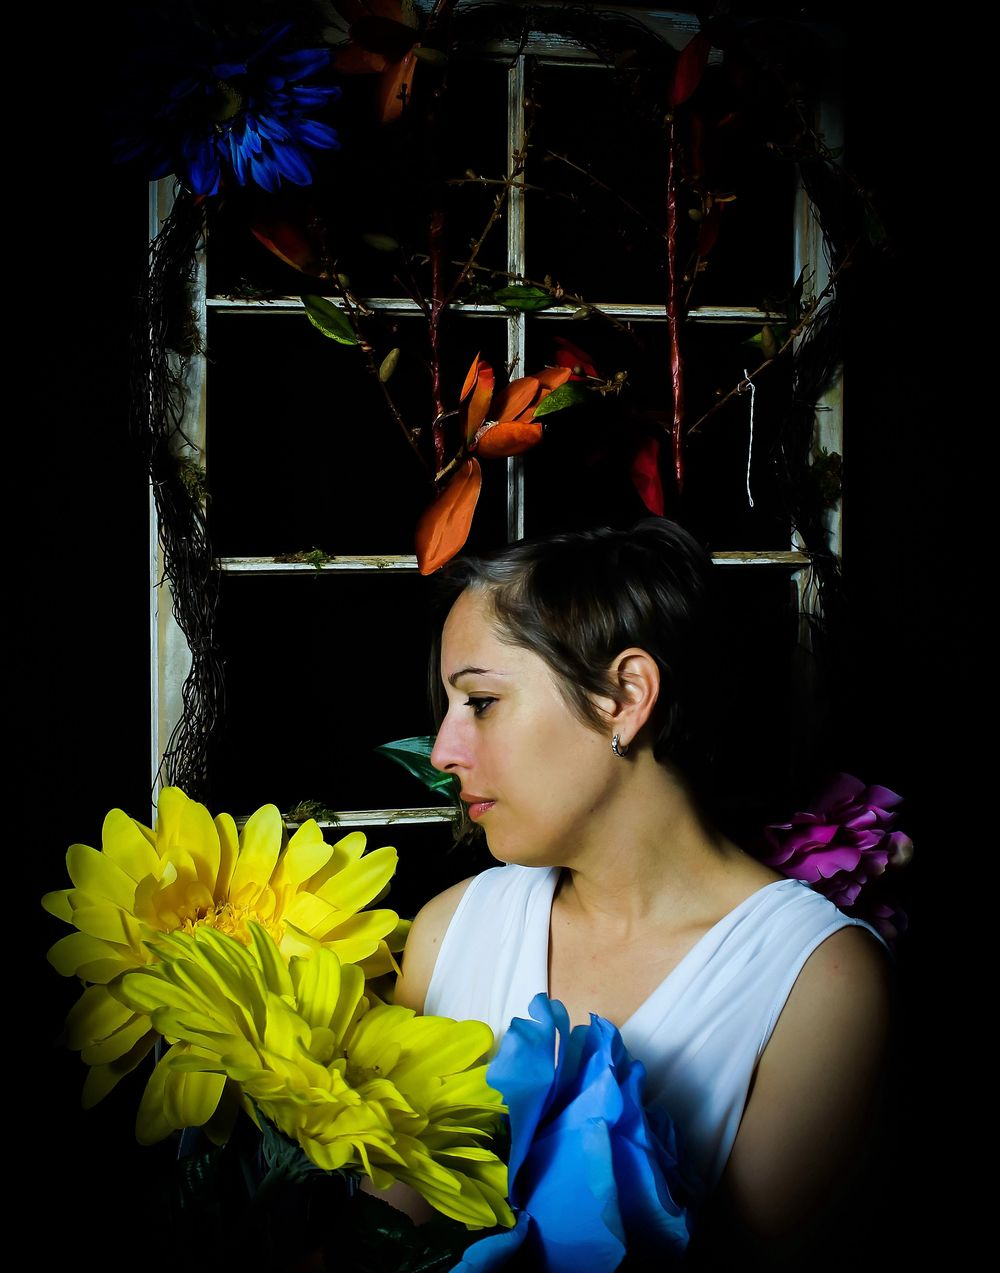 My Portraits - image 5 - student project